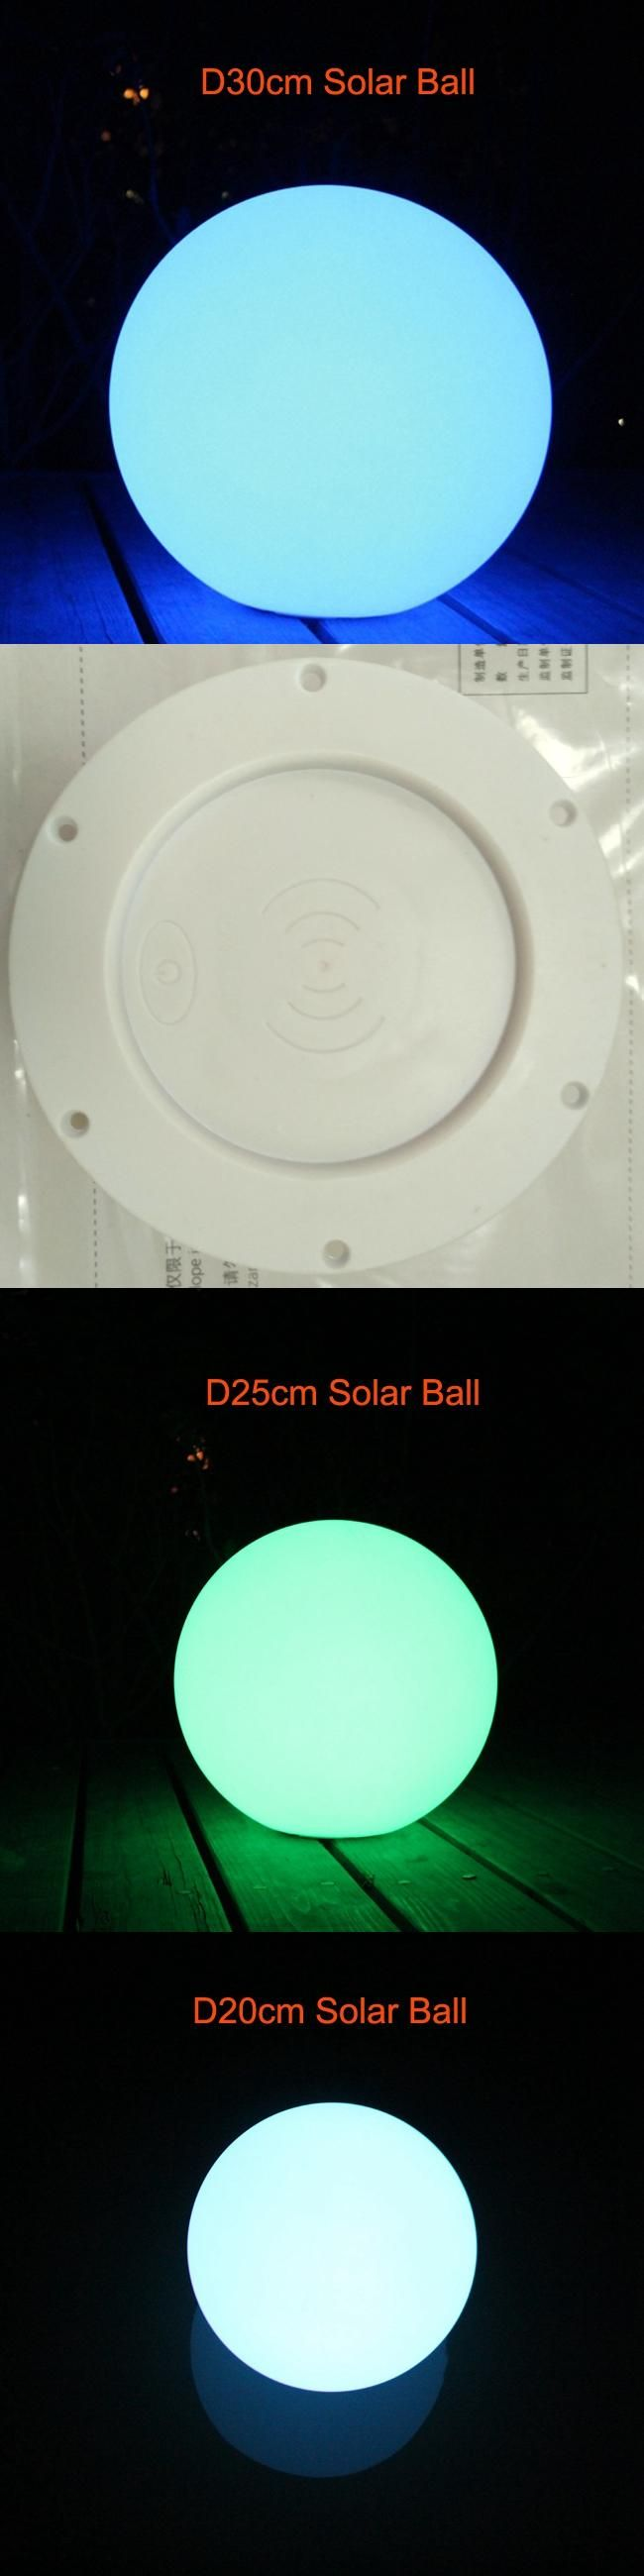 2017 New D20cm D25cm D30cm LED Solar Lamp Ball Waterproof Solar Spot Lights Outdoor RGBW 16 Color Change for Christmas Decor 1pc